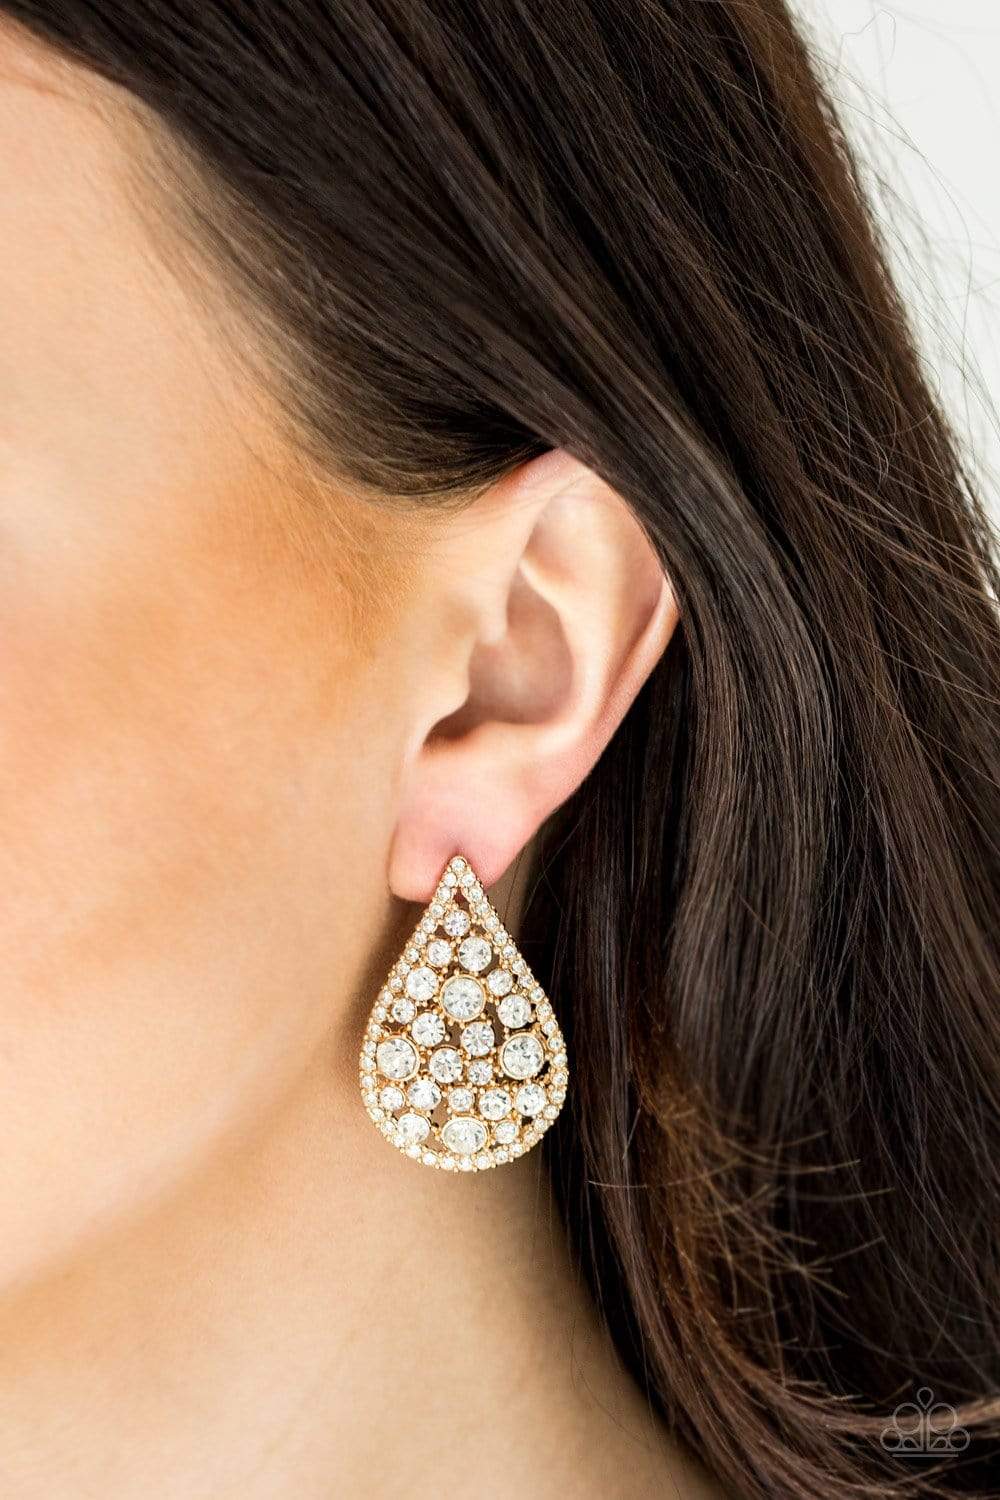 Paparazzi: REIGN-Storm - Gold Teardrop Earrings